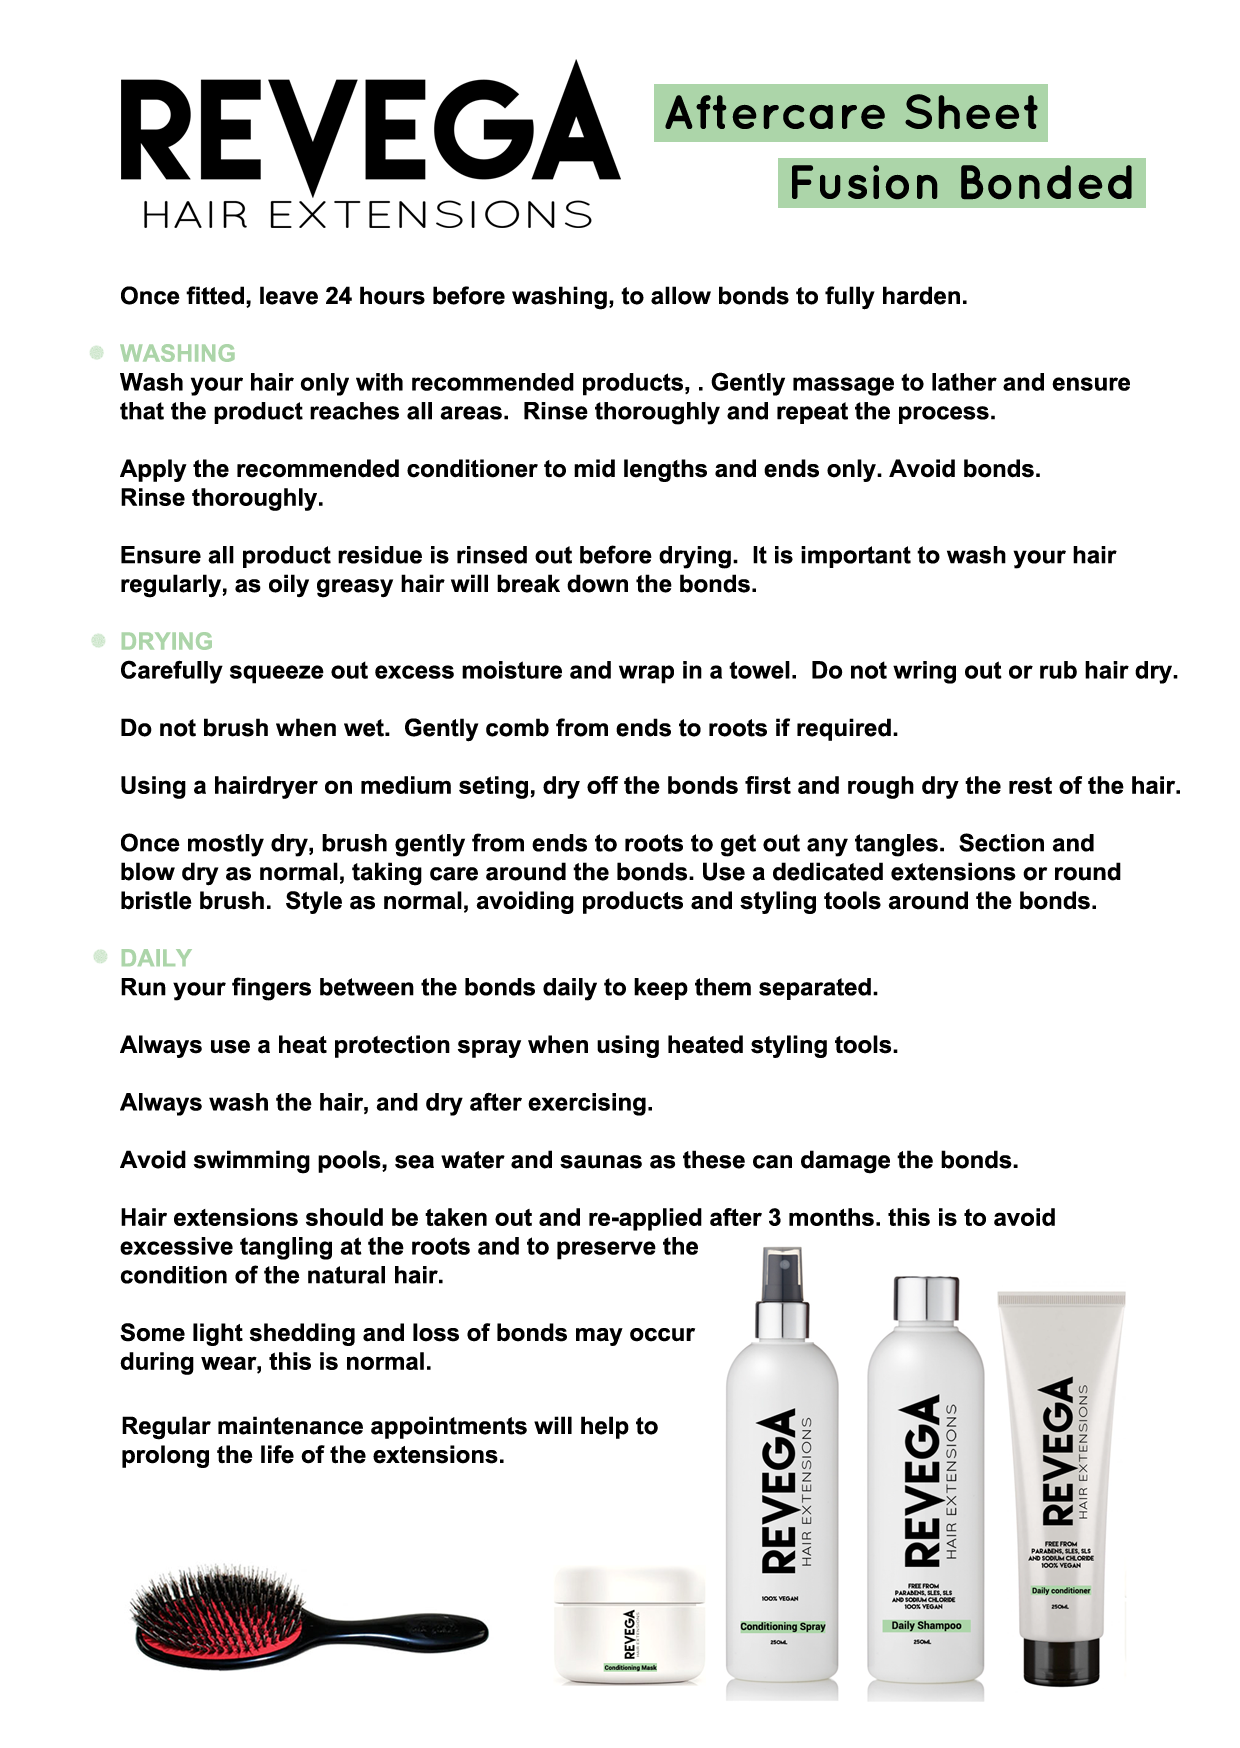 Revega Hair Extensions Aftercare